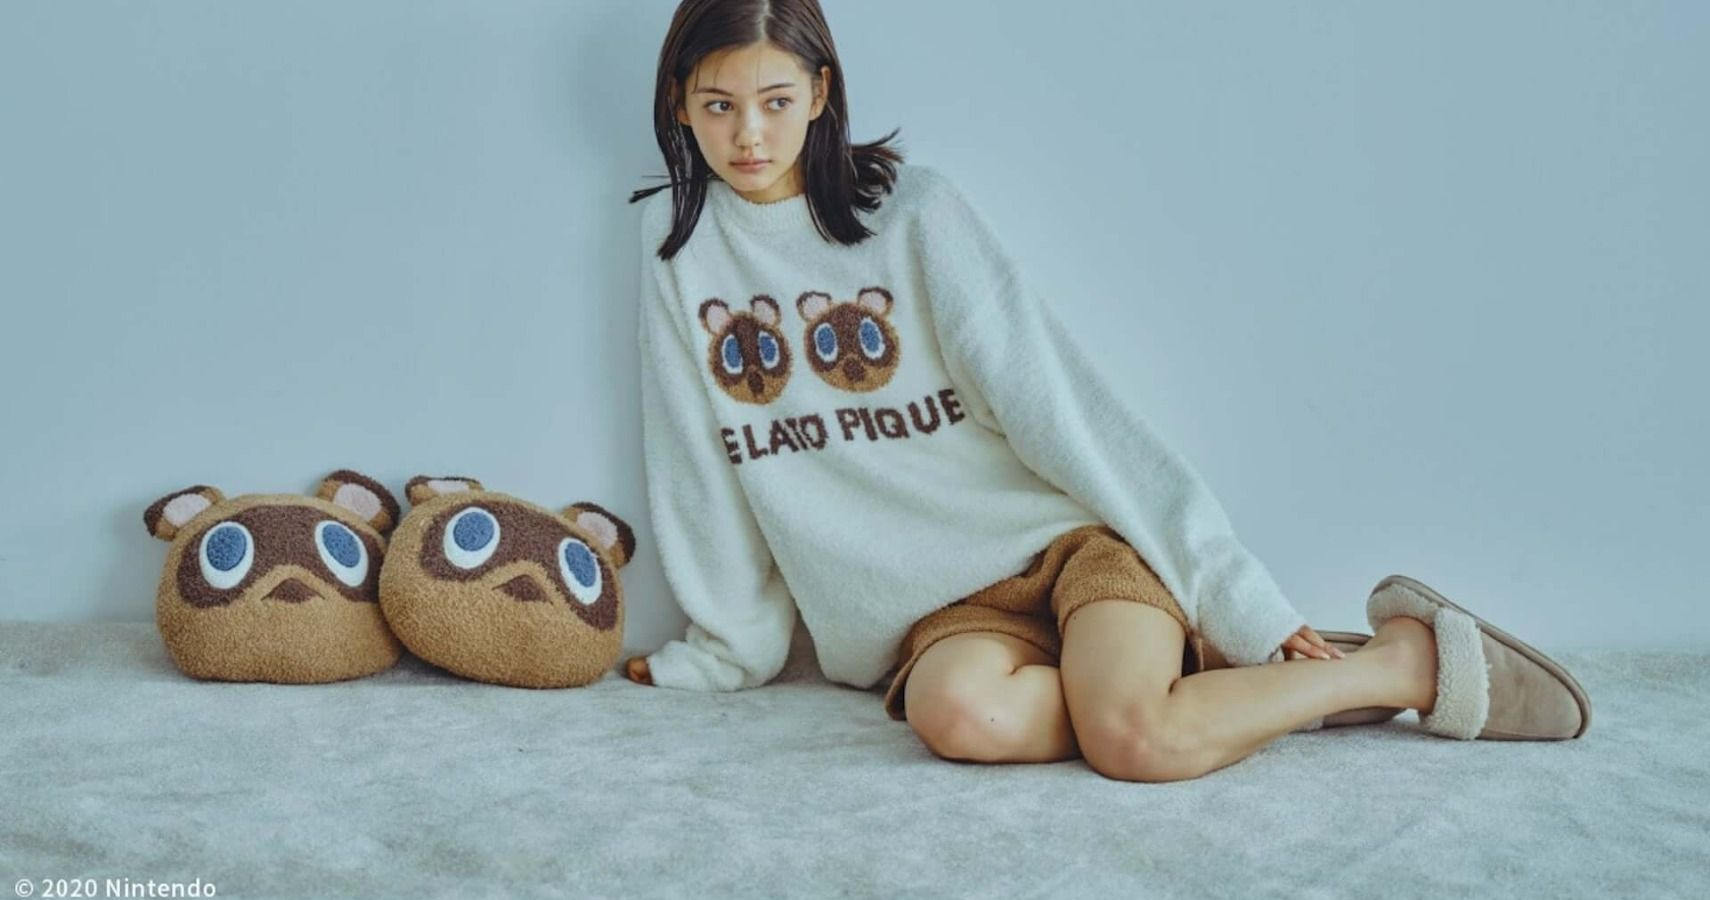 New Lineup Of Animal Crossing Clothing Features Nook Slippers And Pullover